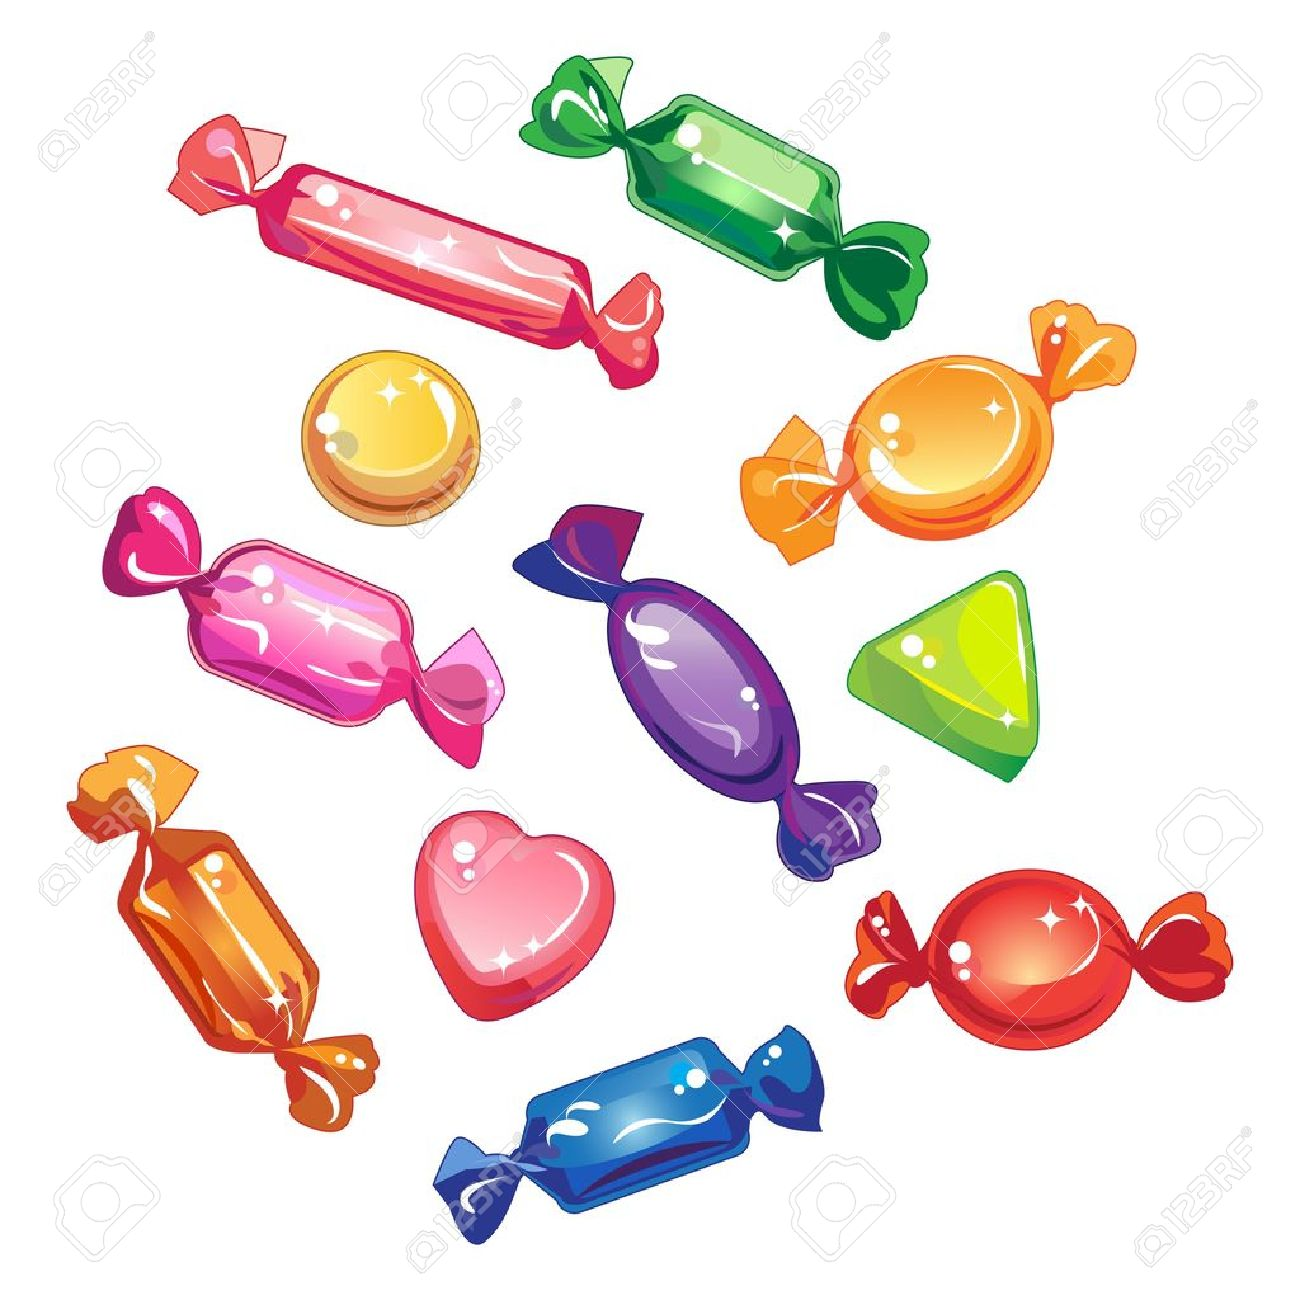 Sweets, candy and chocolate, in colorful shiny wrappers.